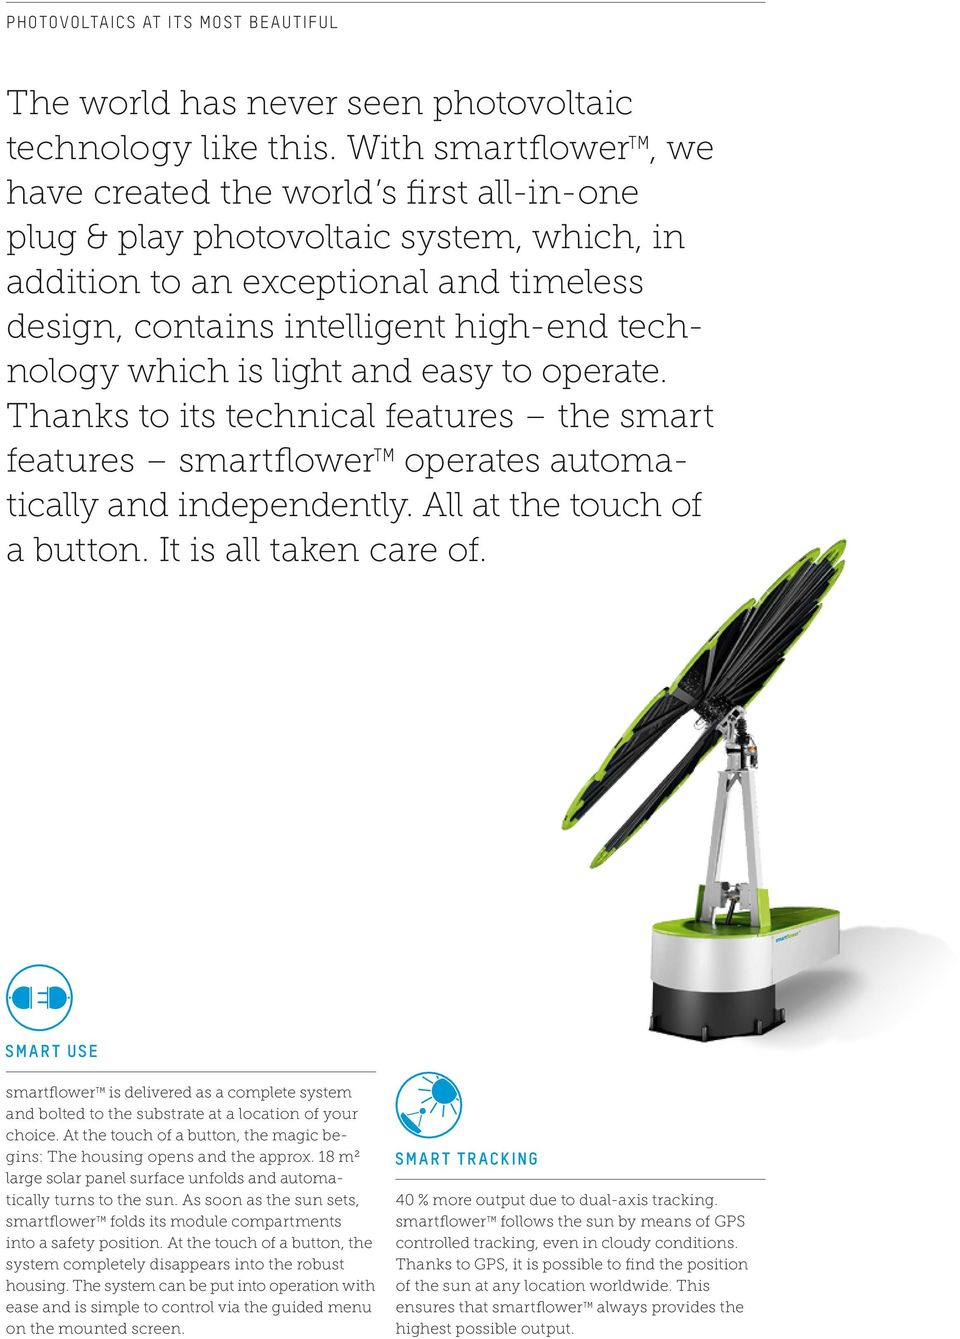 which is light and easy to operate. Thanks to its technical features the smart features smartflower TM operates automatically and independently. All at the touch of a button. It is all taken care of.